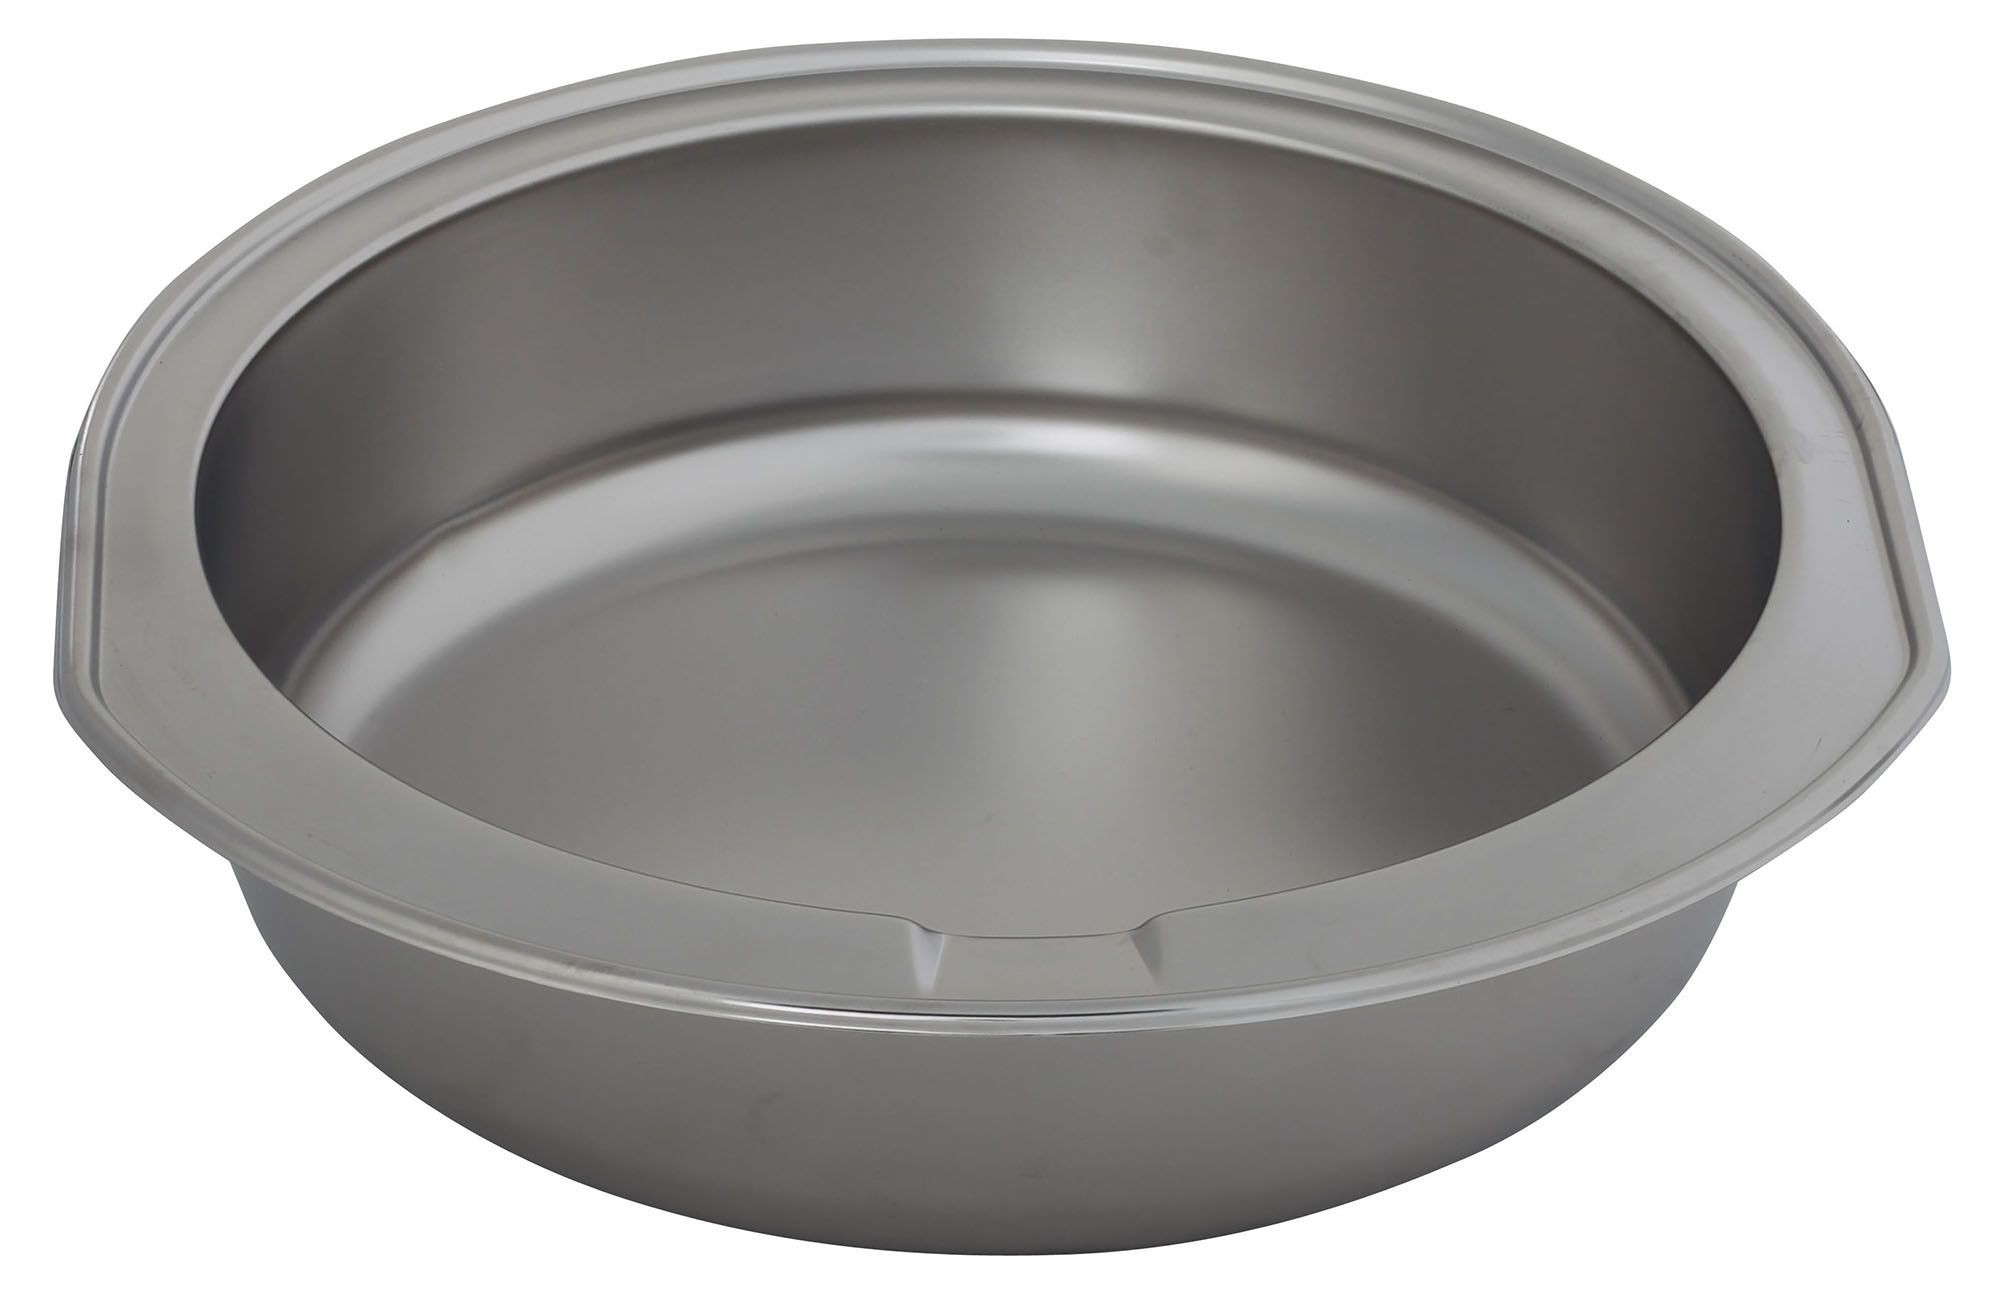 Winco 103-WP Virtuoso Water Pan for 6 Qt. Roll-Top Chafers (Models 103A and 103B)